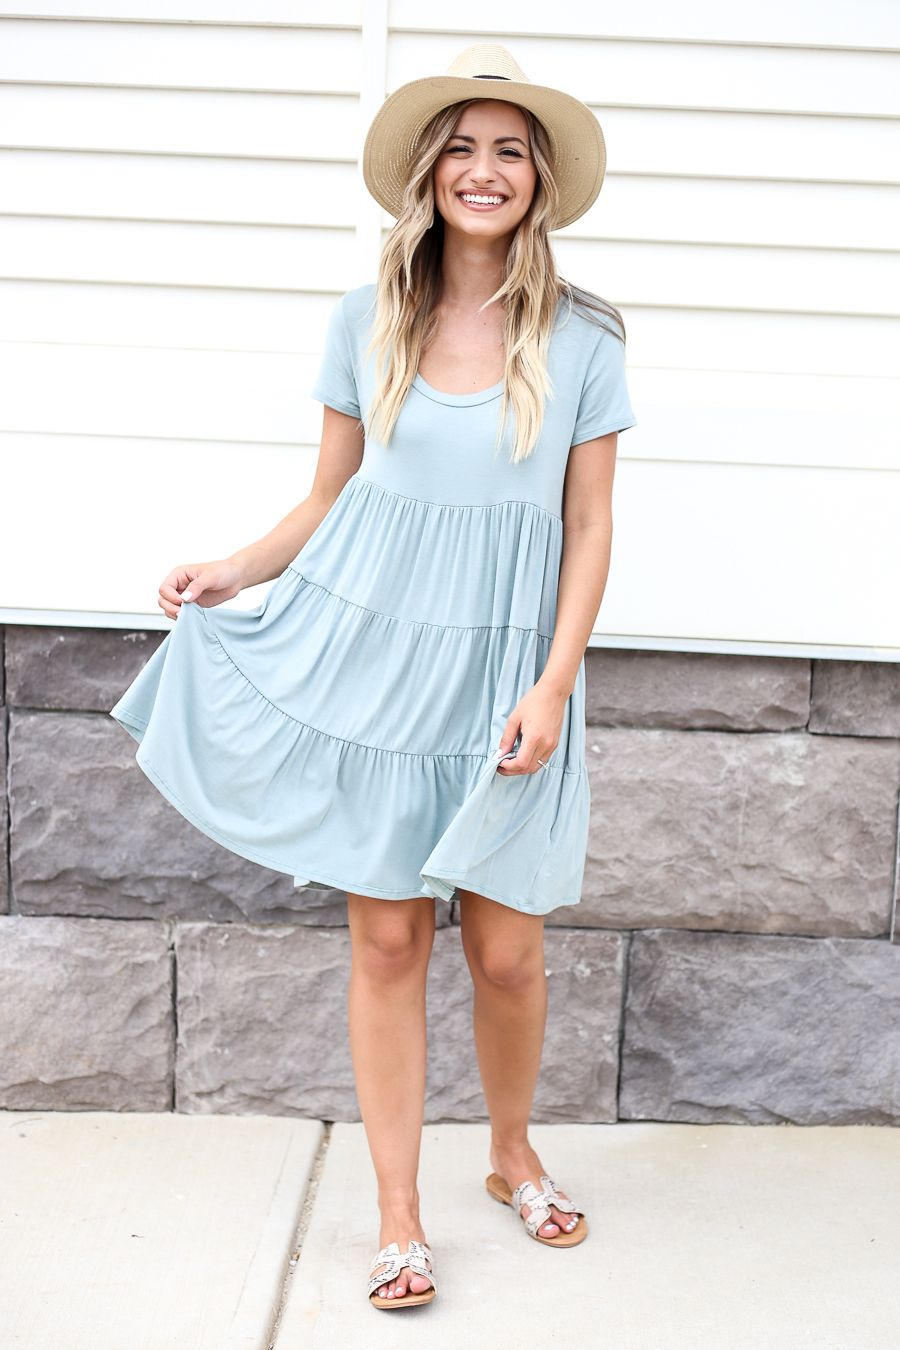 Tiered T Shirt Dress Spring Dresses Casual Trendy Dresses Cool Summer Outfits [ 1350 x 900 Pixel ]